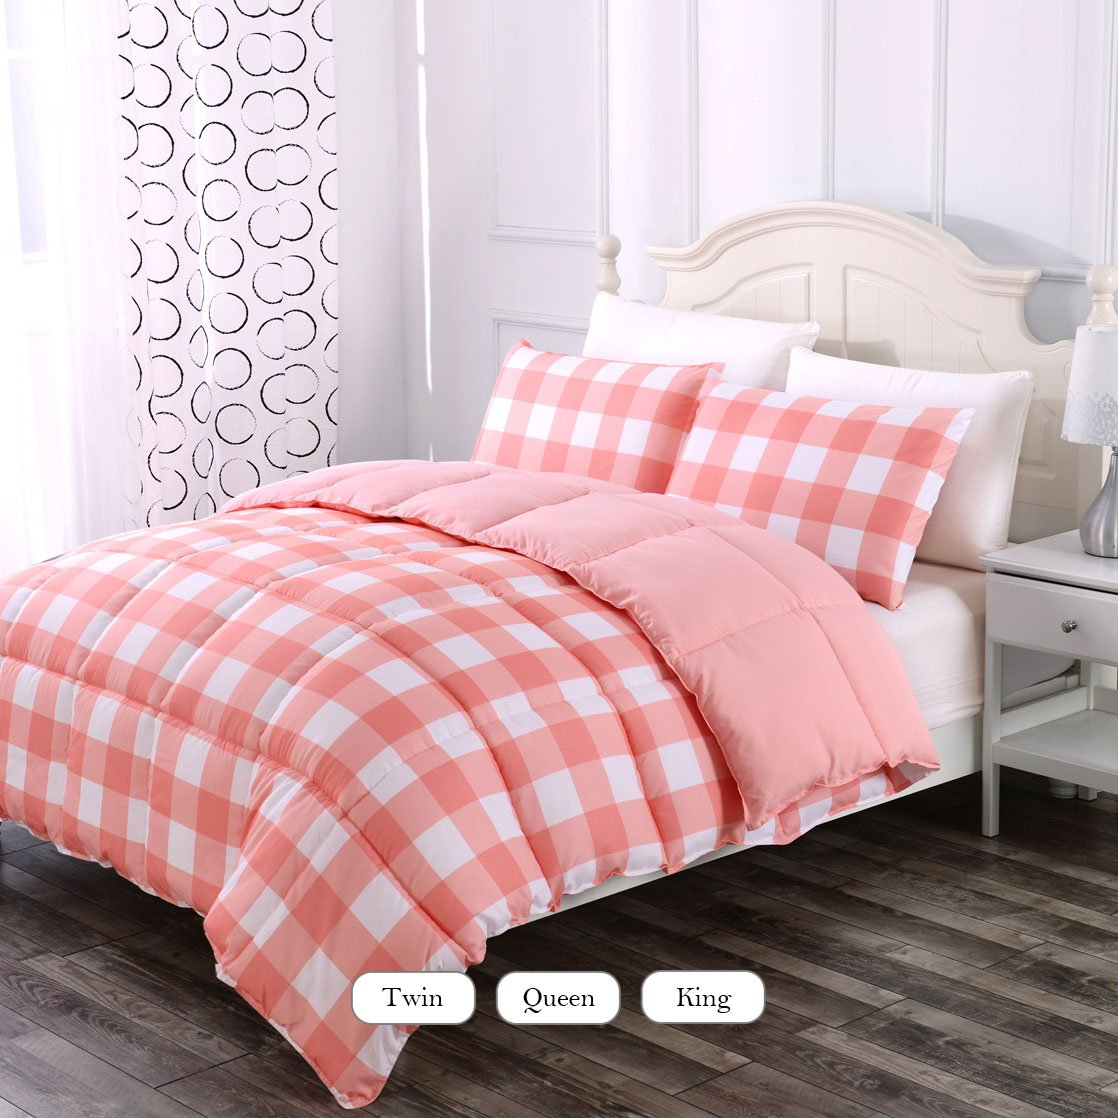 Luxe Bedding 3-PCS Reversible Down Alternative Quilted Duvet / Gingham Comforter Set - All Season Hotel Quality (Twin, Coral)